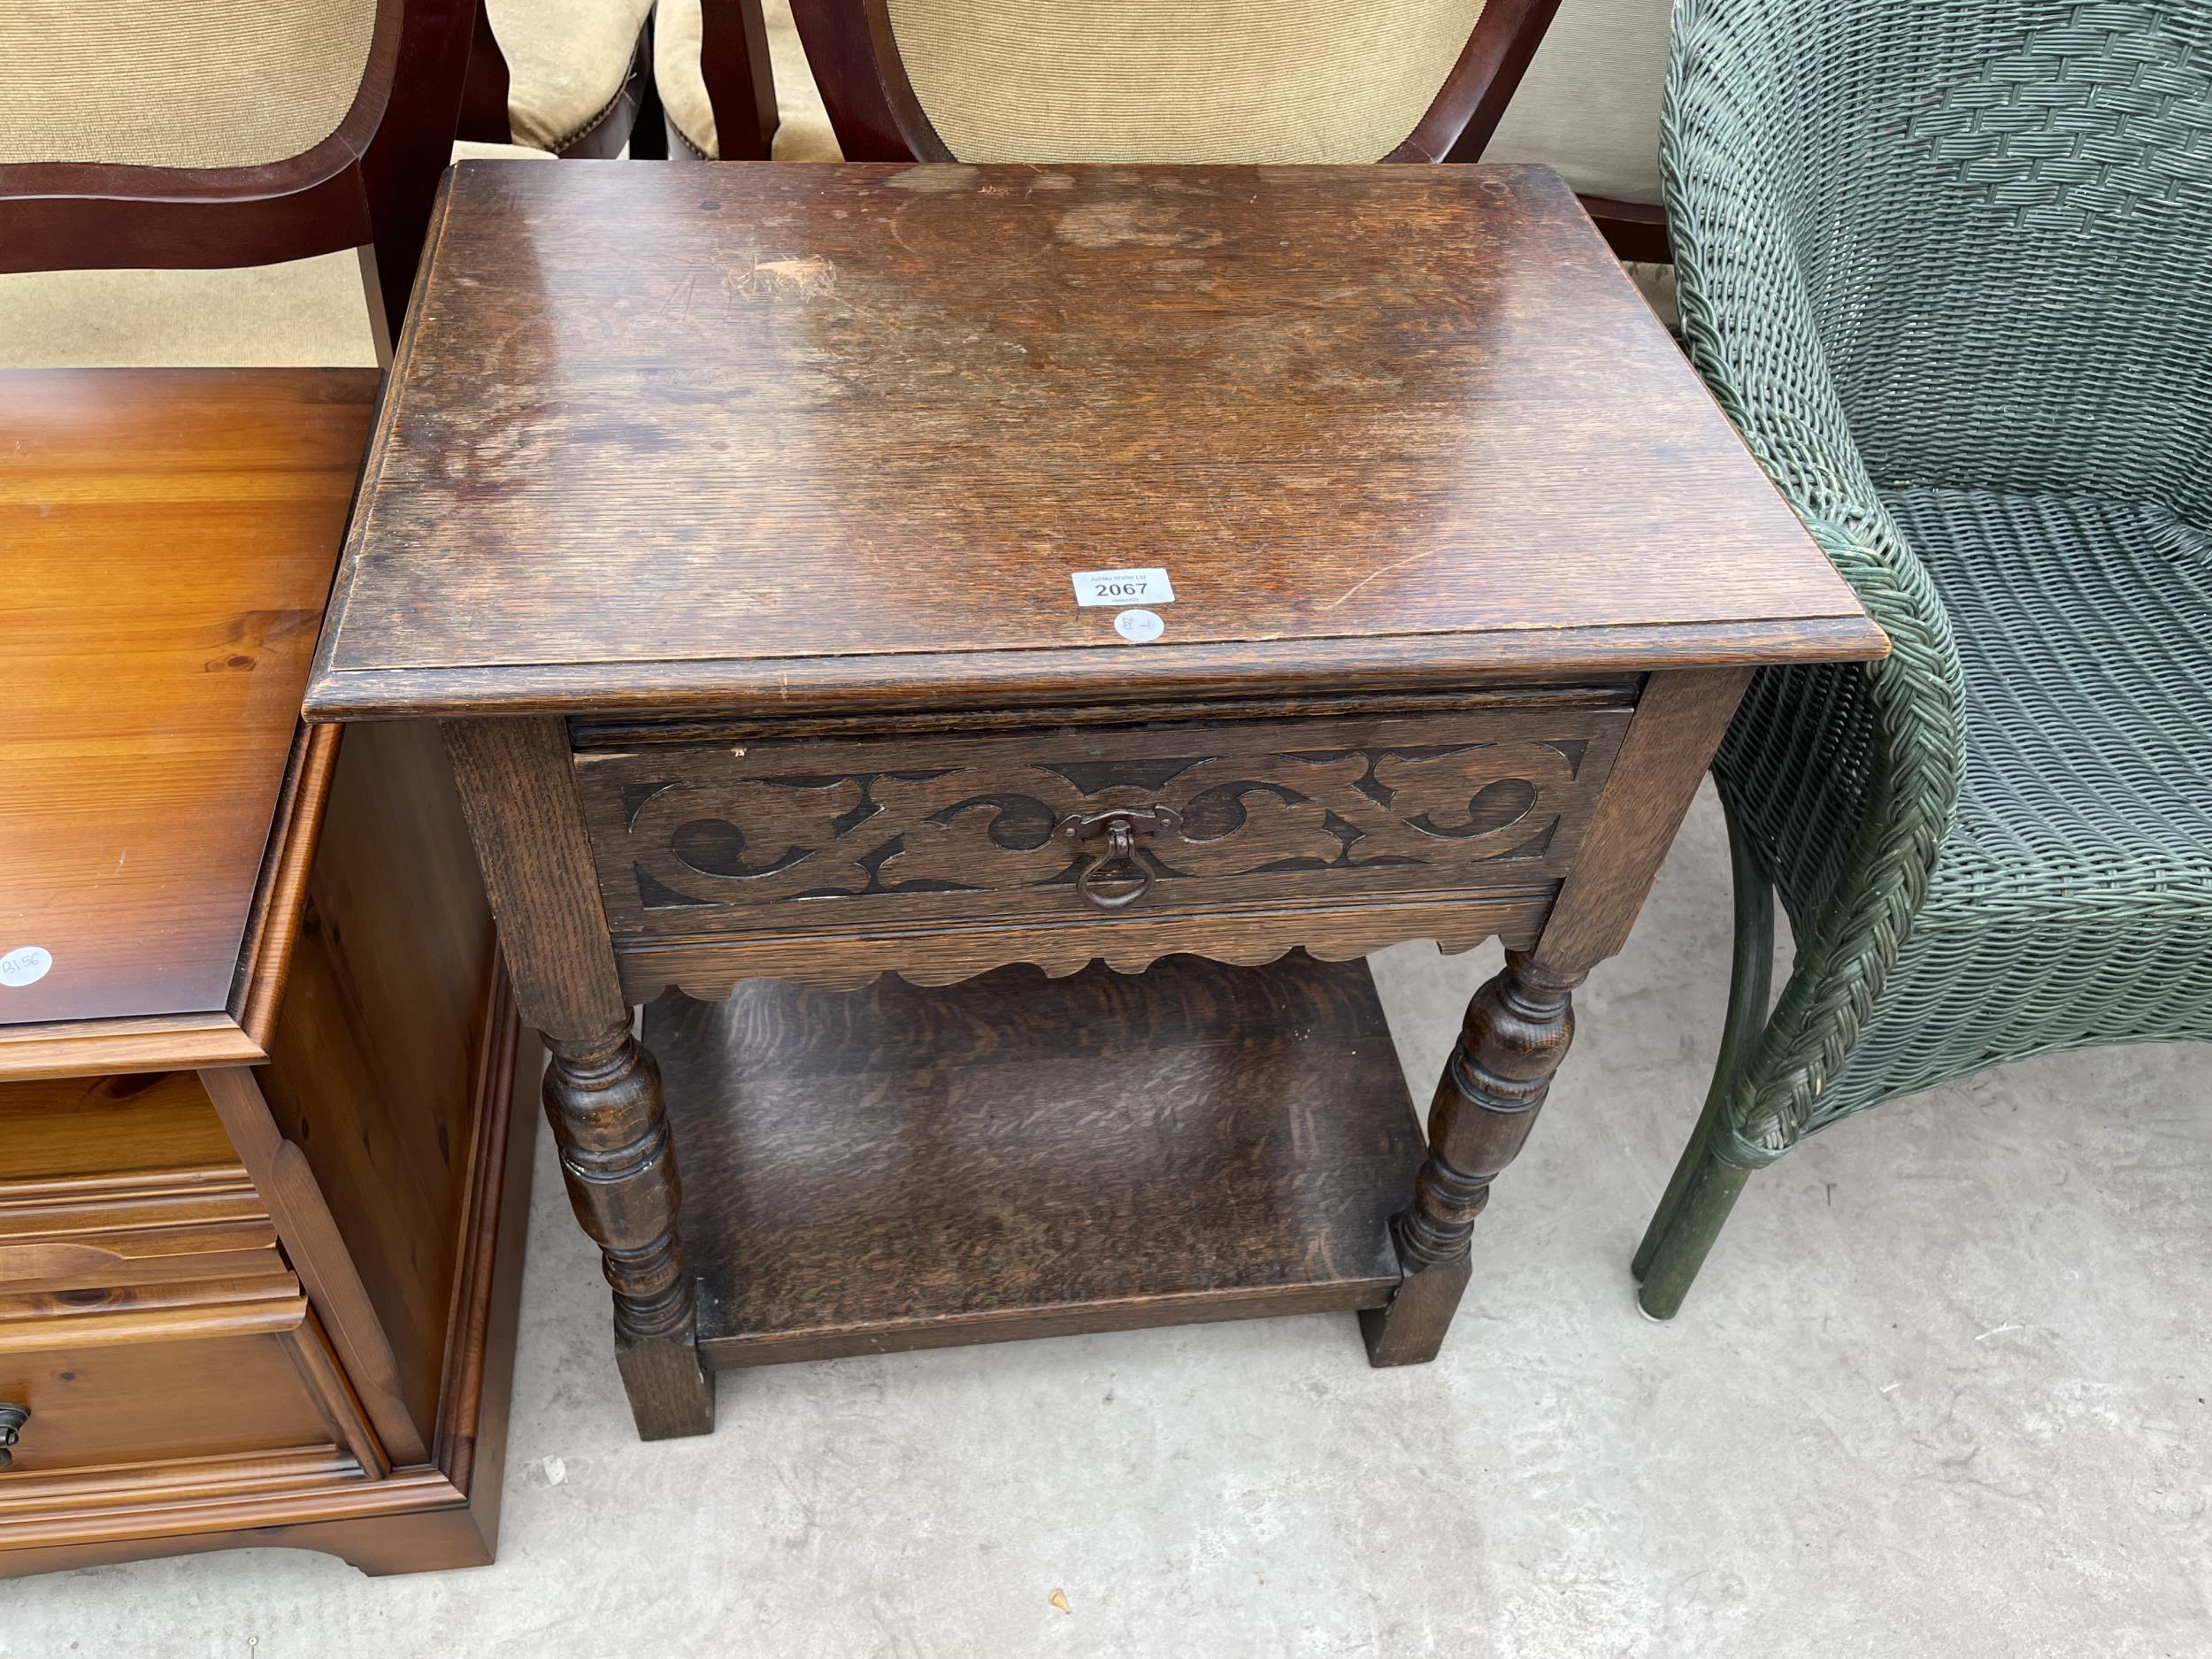 A SMALL OAK JACOBEAN STYLE TABLE WITH SINGLE DRAWER